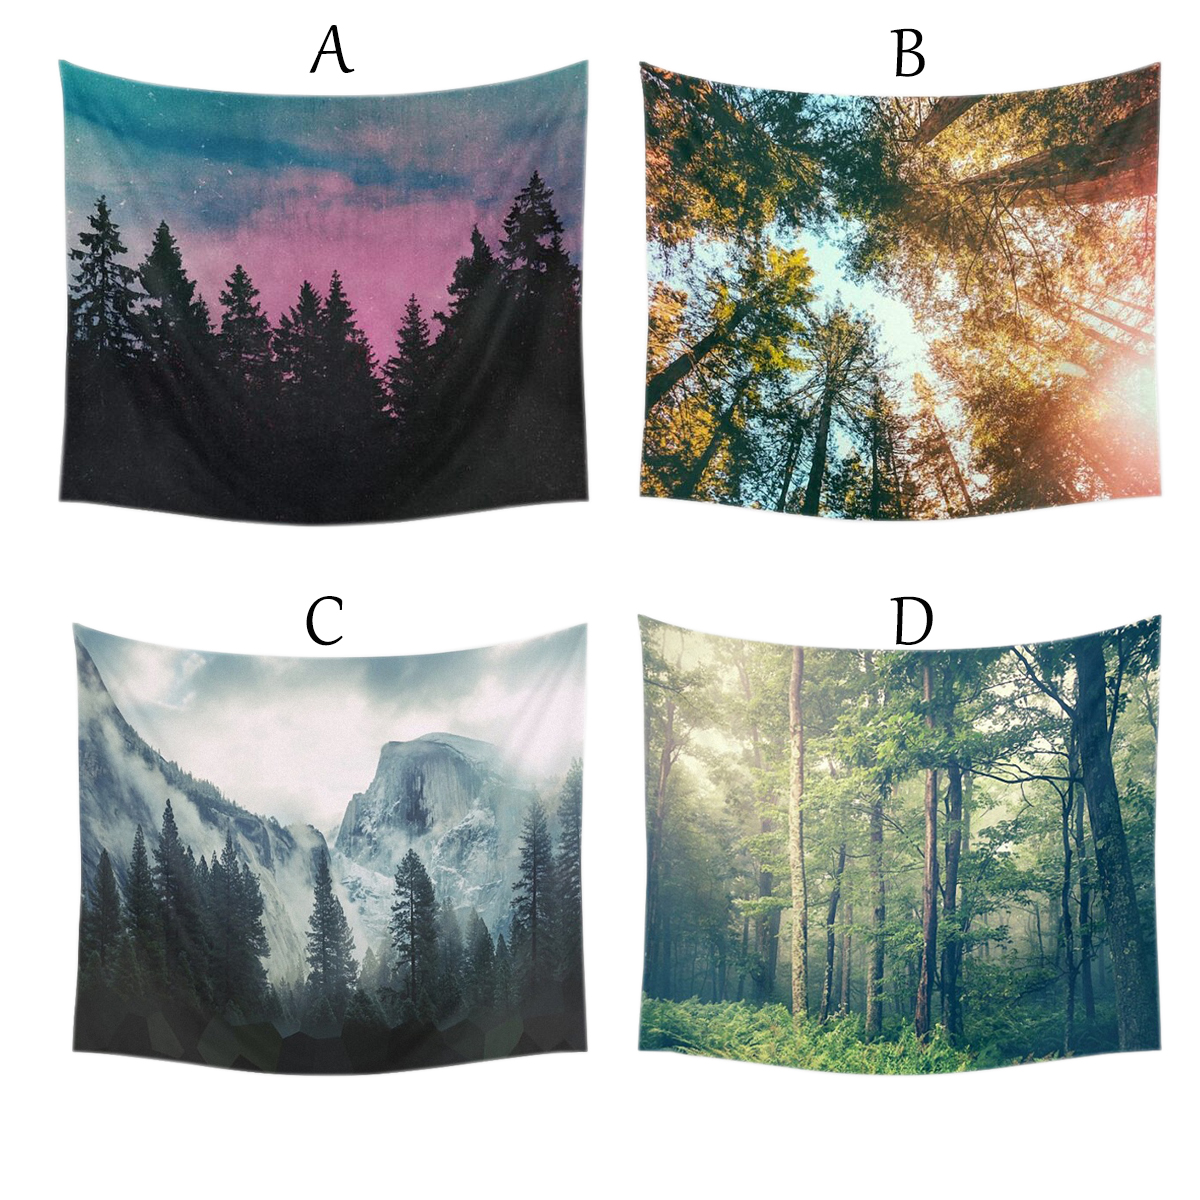 150x130cm/59.06x51.18'' Forest Printing Wall Hanging Tapestry Indian Mandala Wall Hanging Hippie Throw Bedspread Yoga Mat Bohemian Dorm Bedspread Decor US